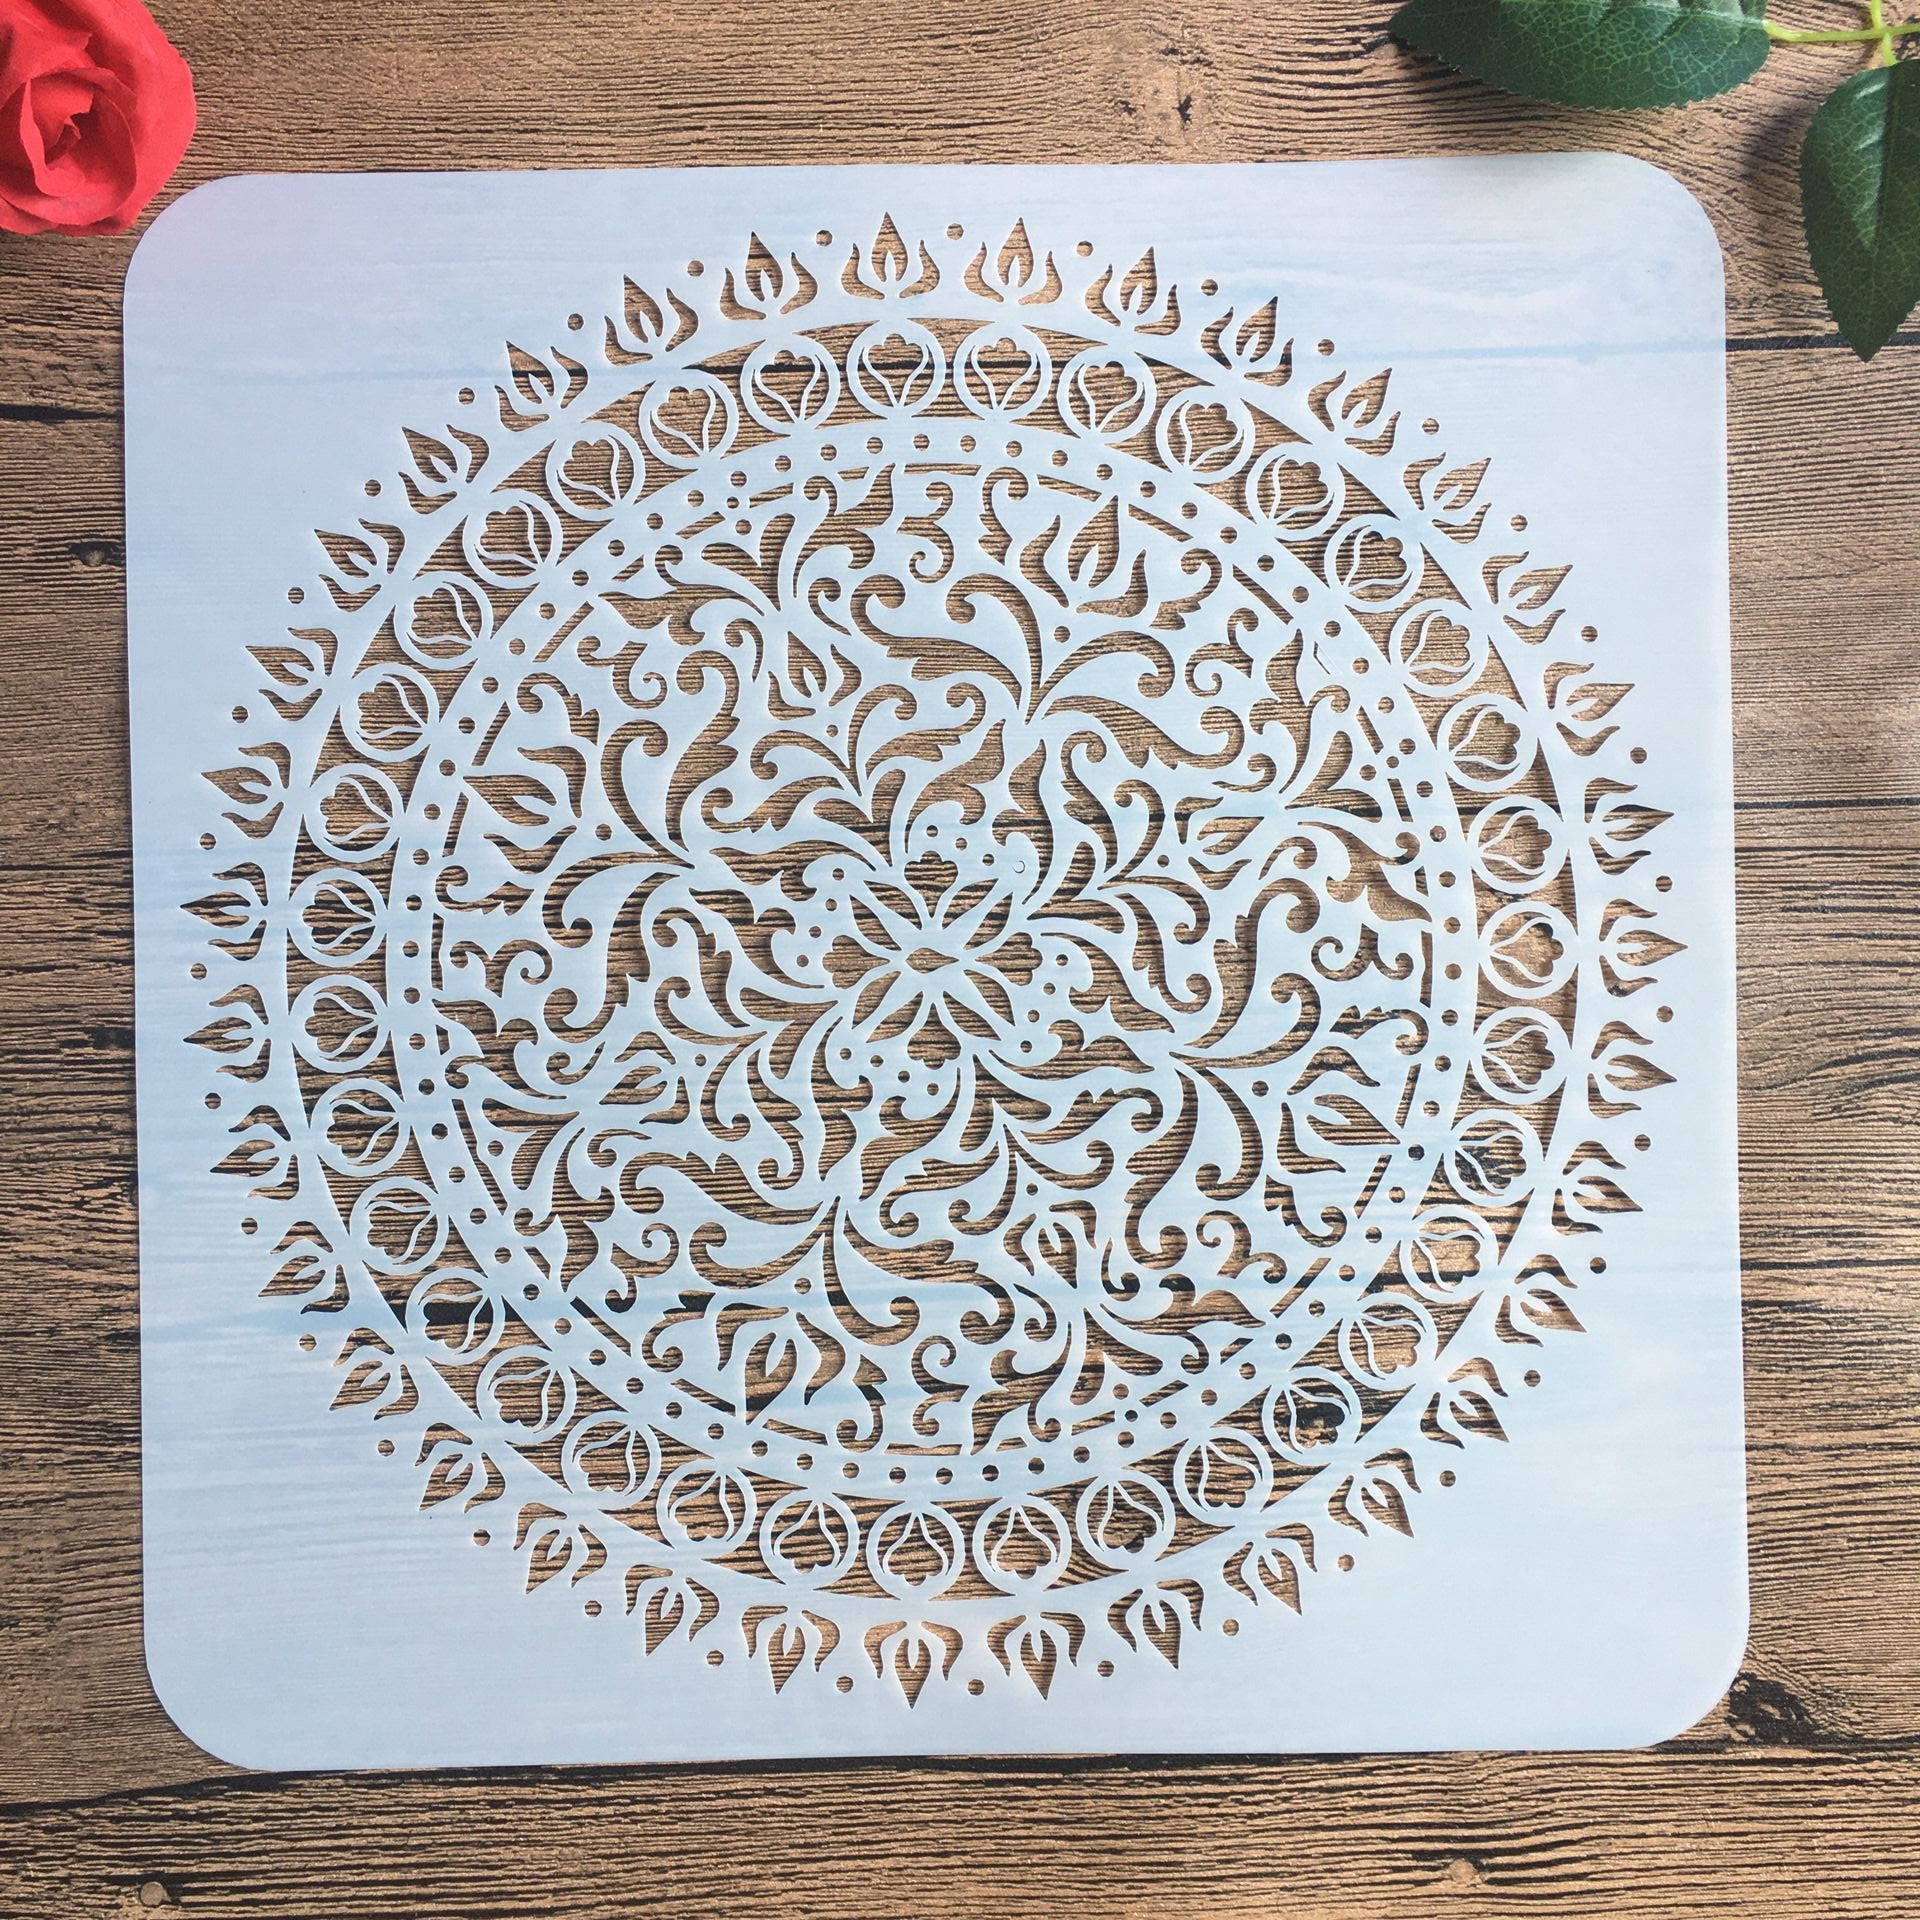 30 * 30 Cm Large Round Flower Mandala Diy Stencil Painting Scrapbook Coloring Engraving Album Decoration Template Stencil -c